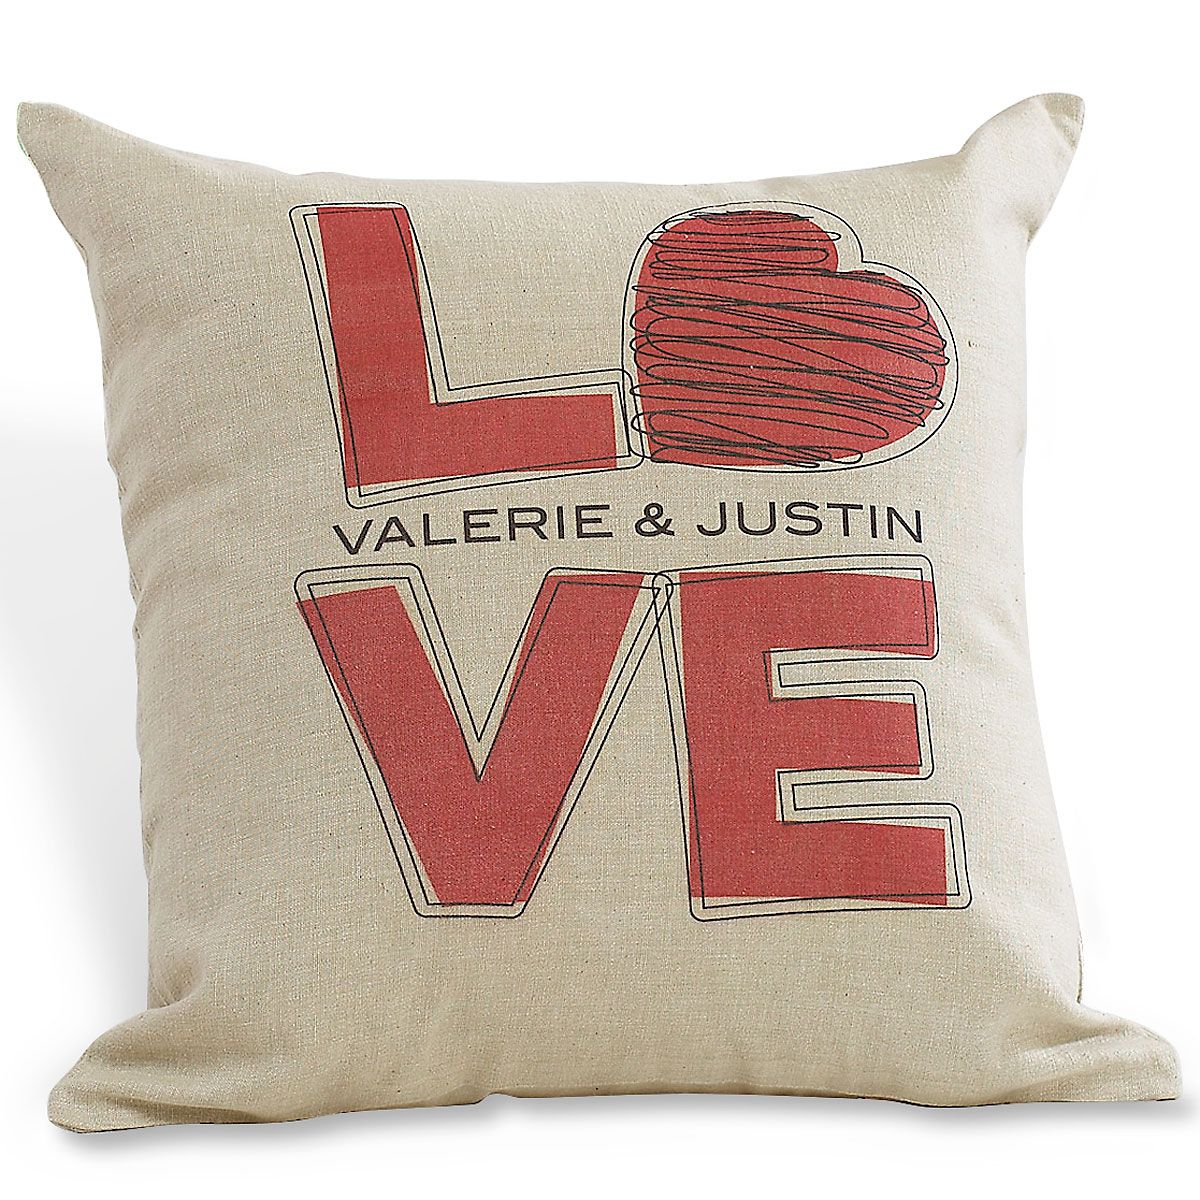 L-O-V-E Decorative Pillow